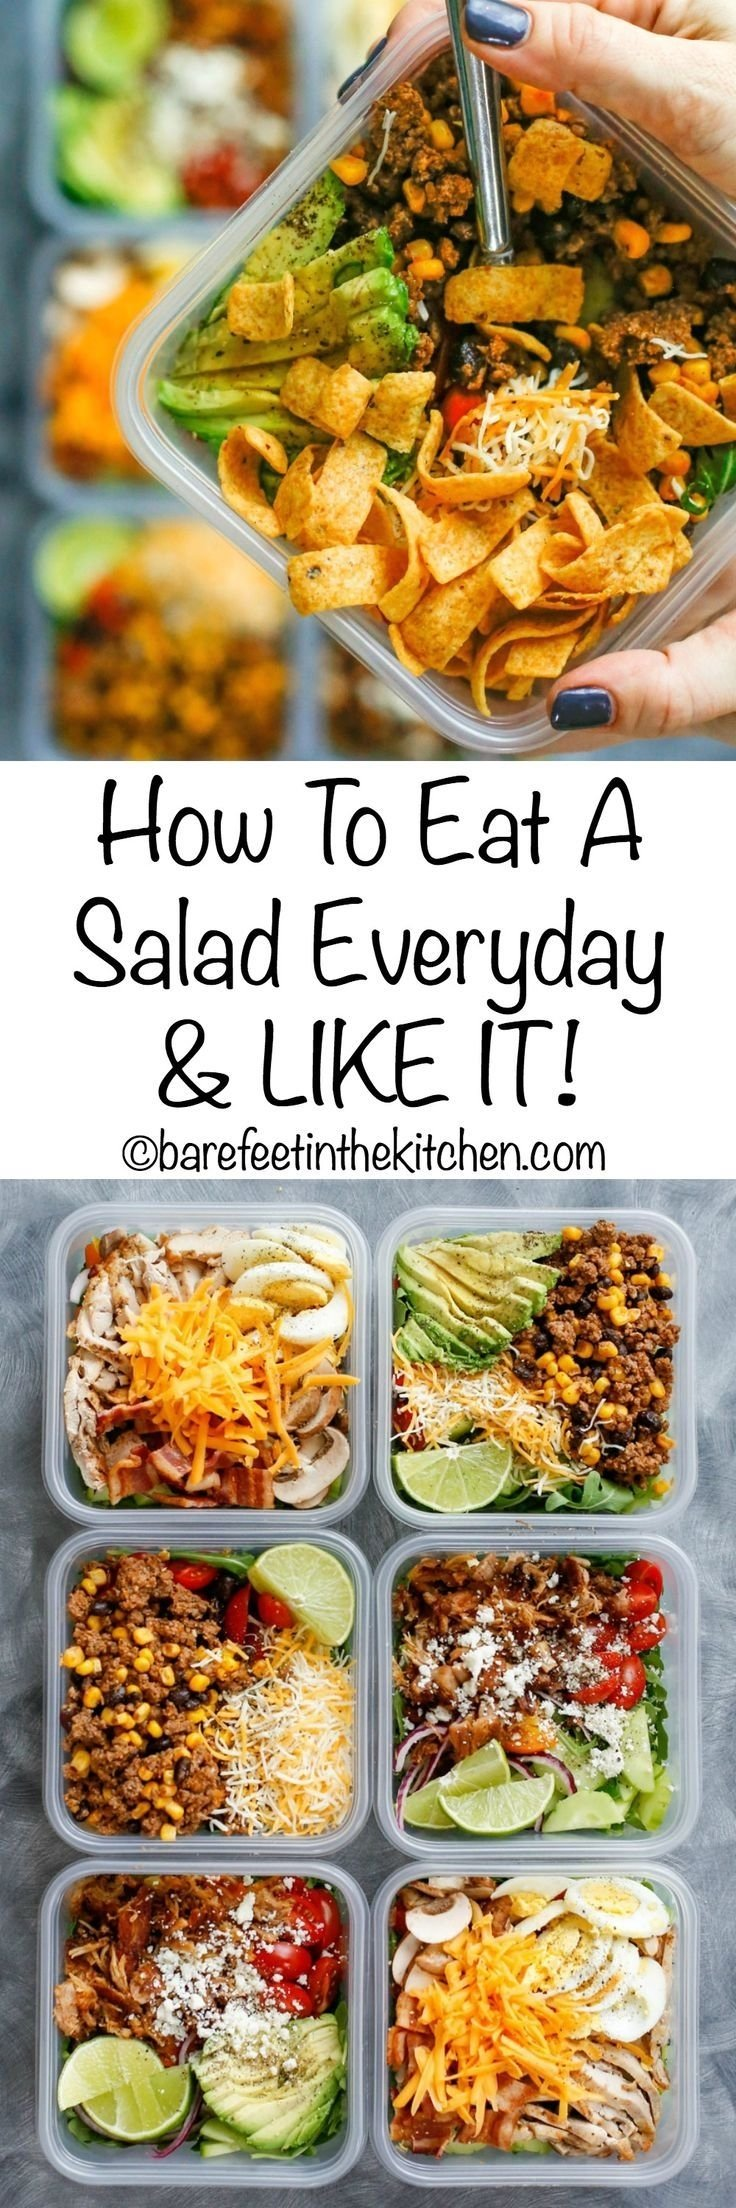 10 Elegant Diet Lunch Ideas For Work 40 best lunch ideas images on pinterest cooking food healthy eats 1 2020